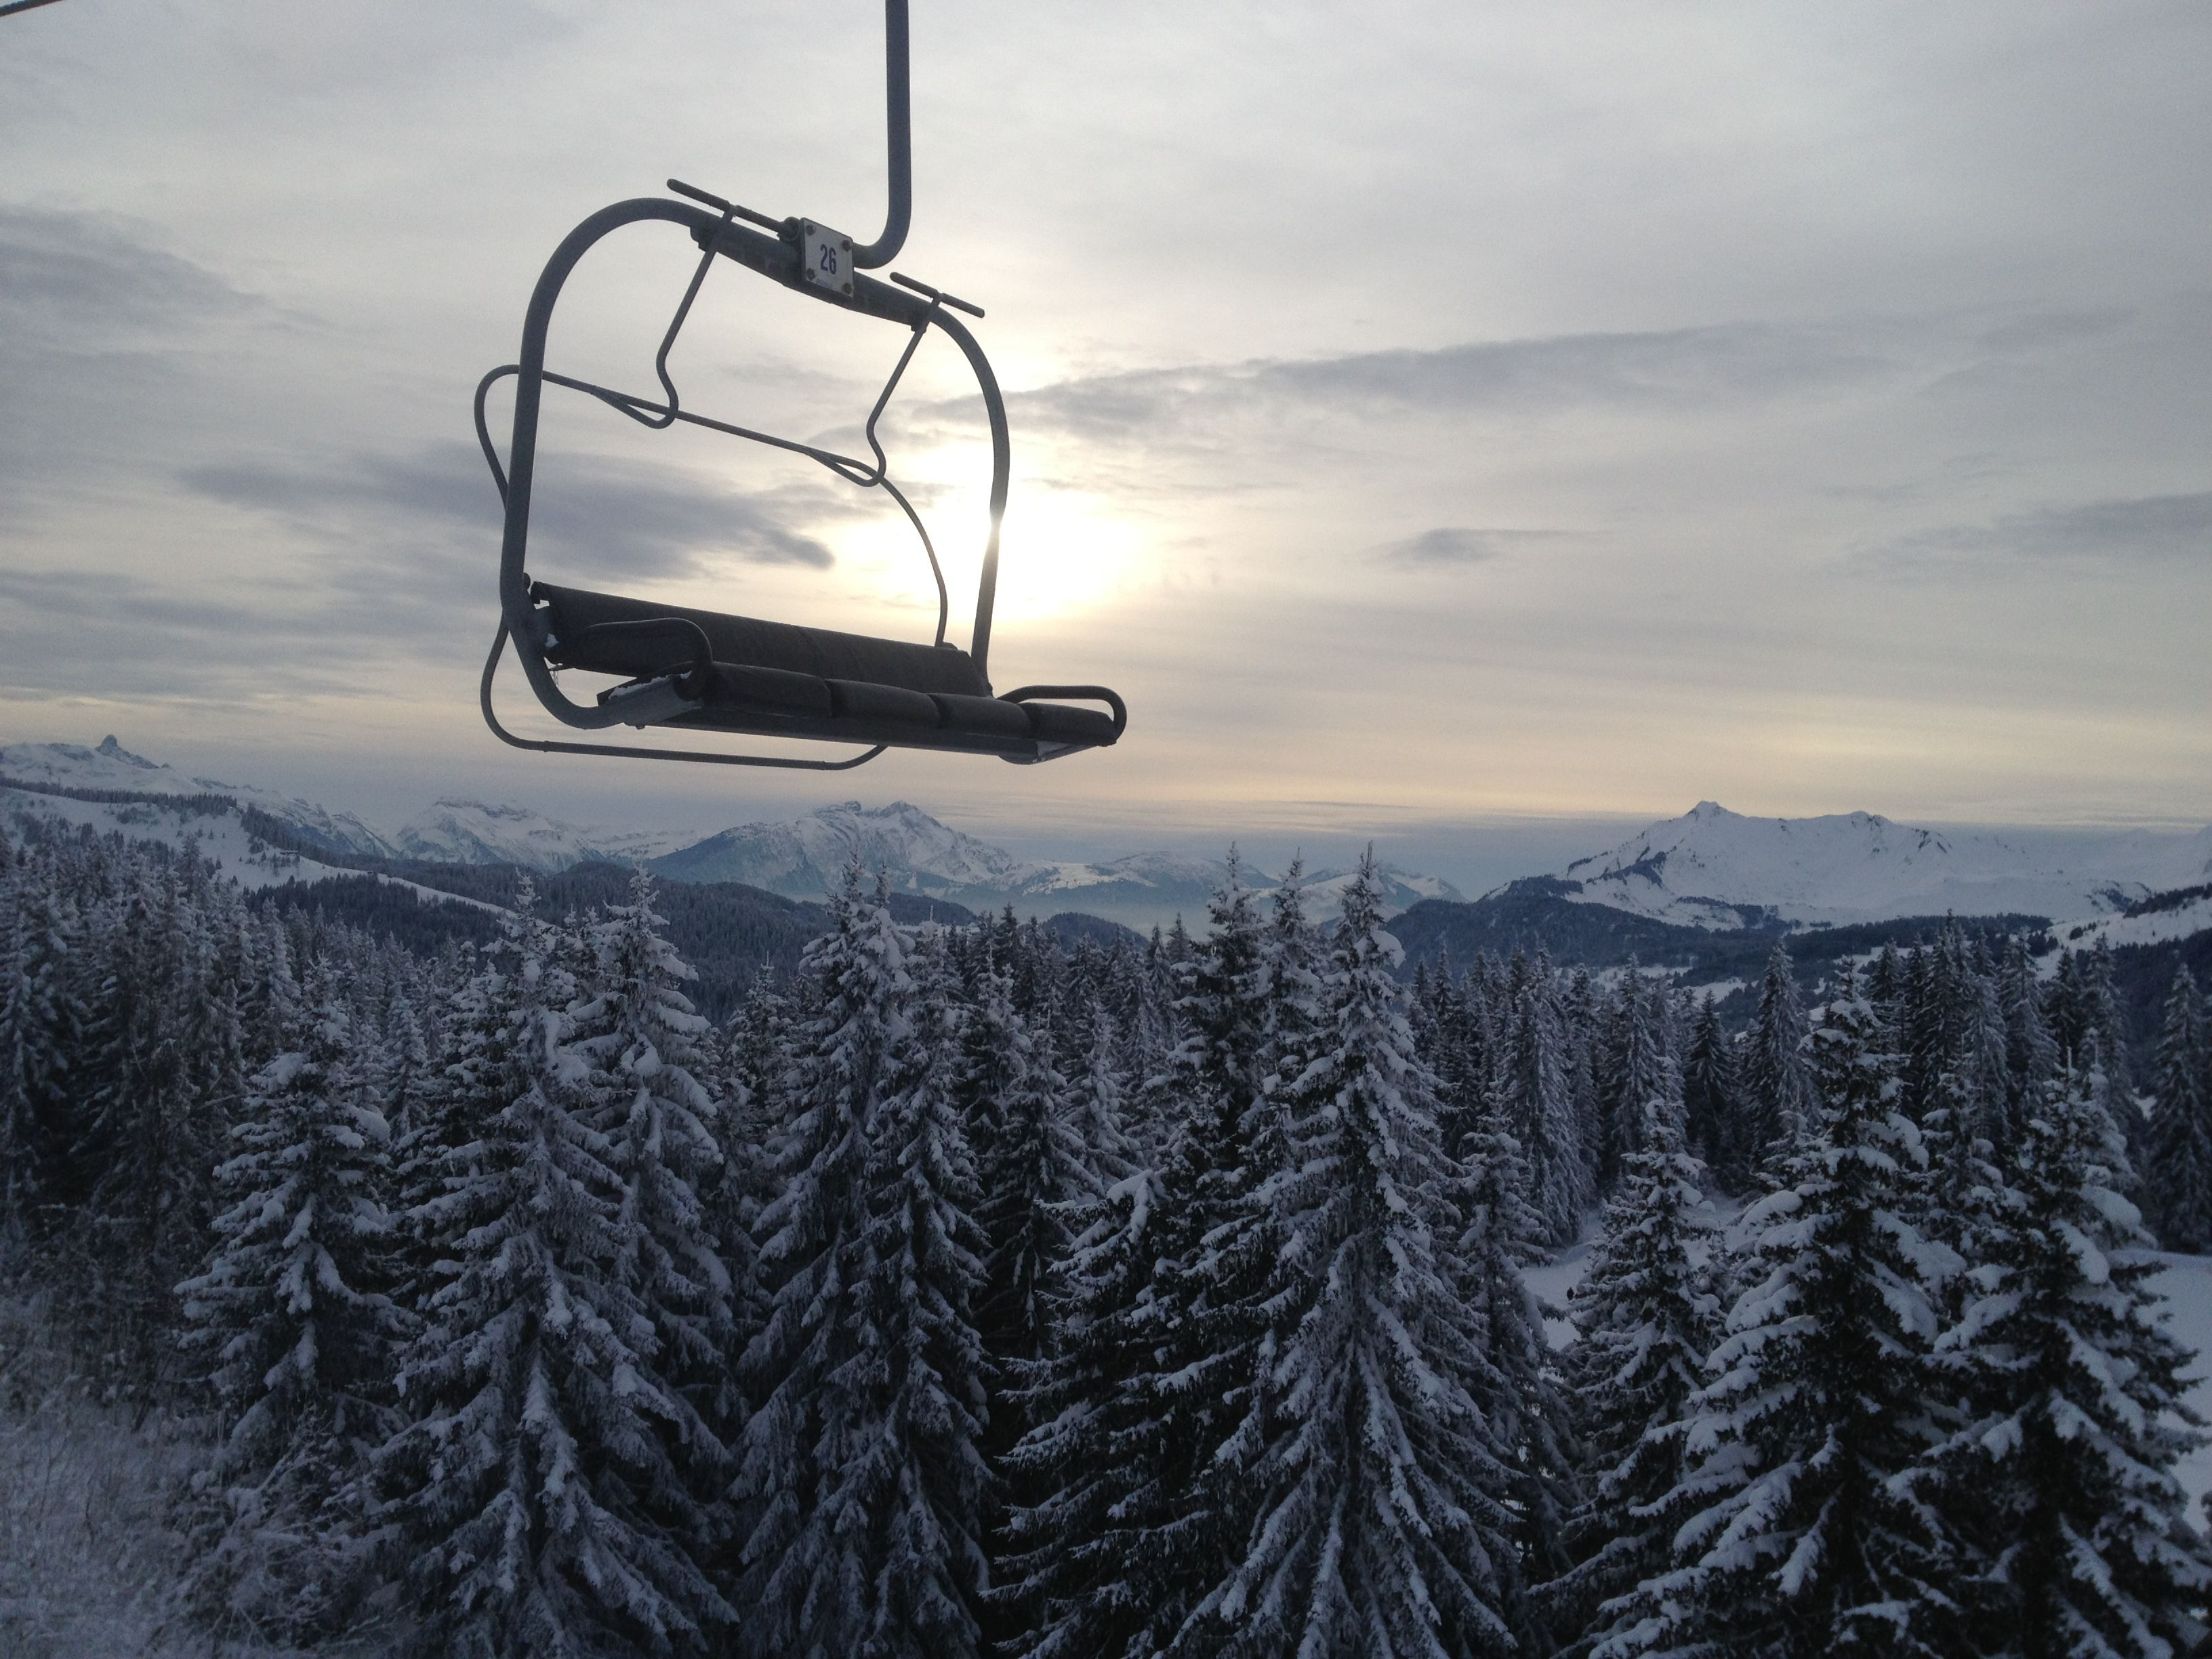 alps mountaineering adventure chair perfect beach chairs last lift skiing back to les gets beautiful snow